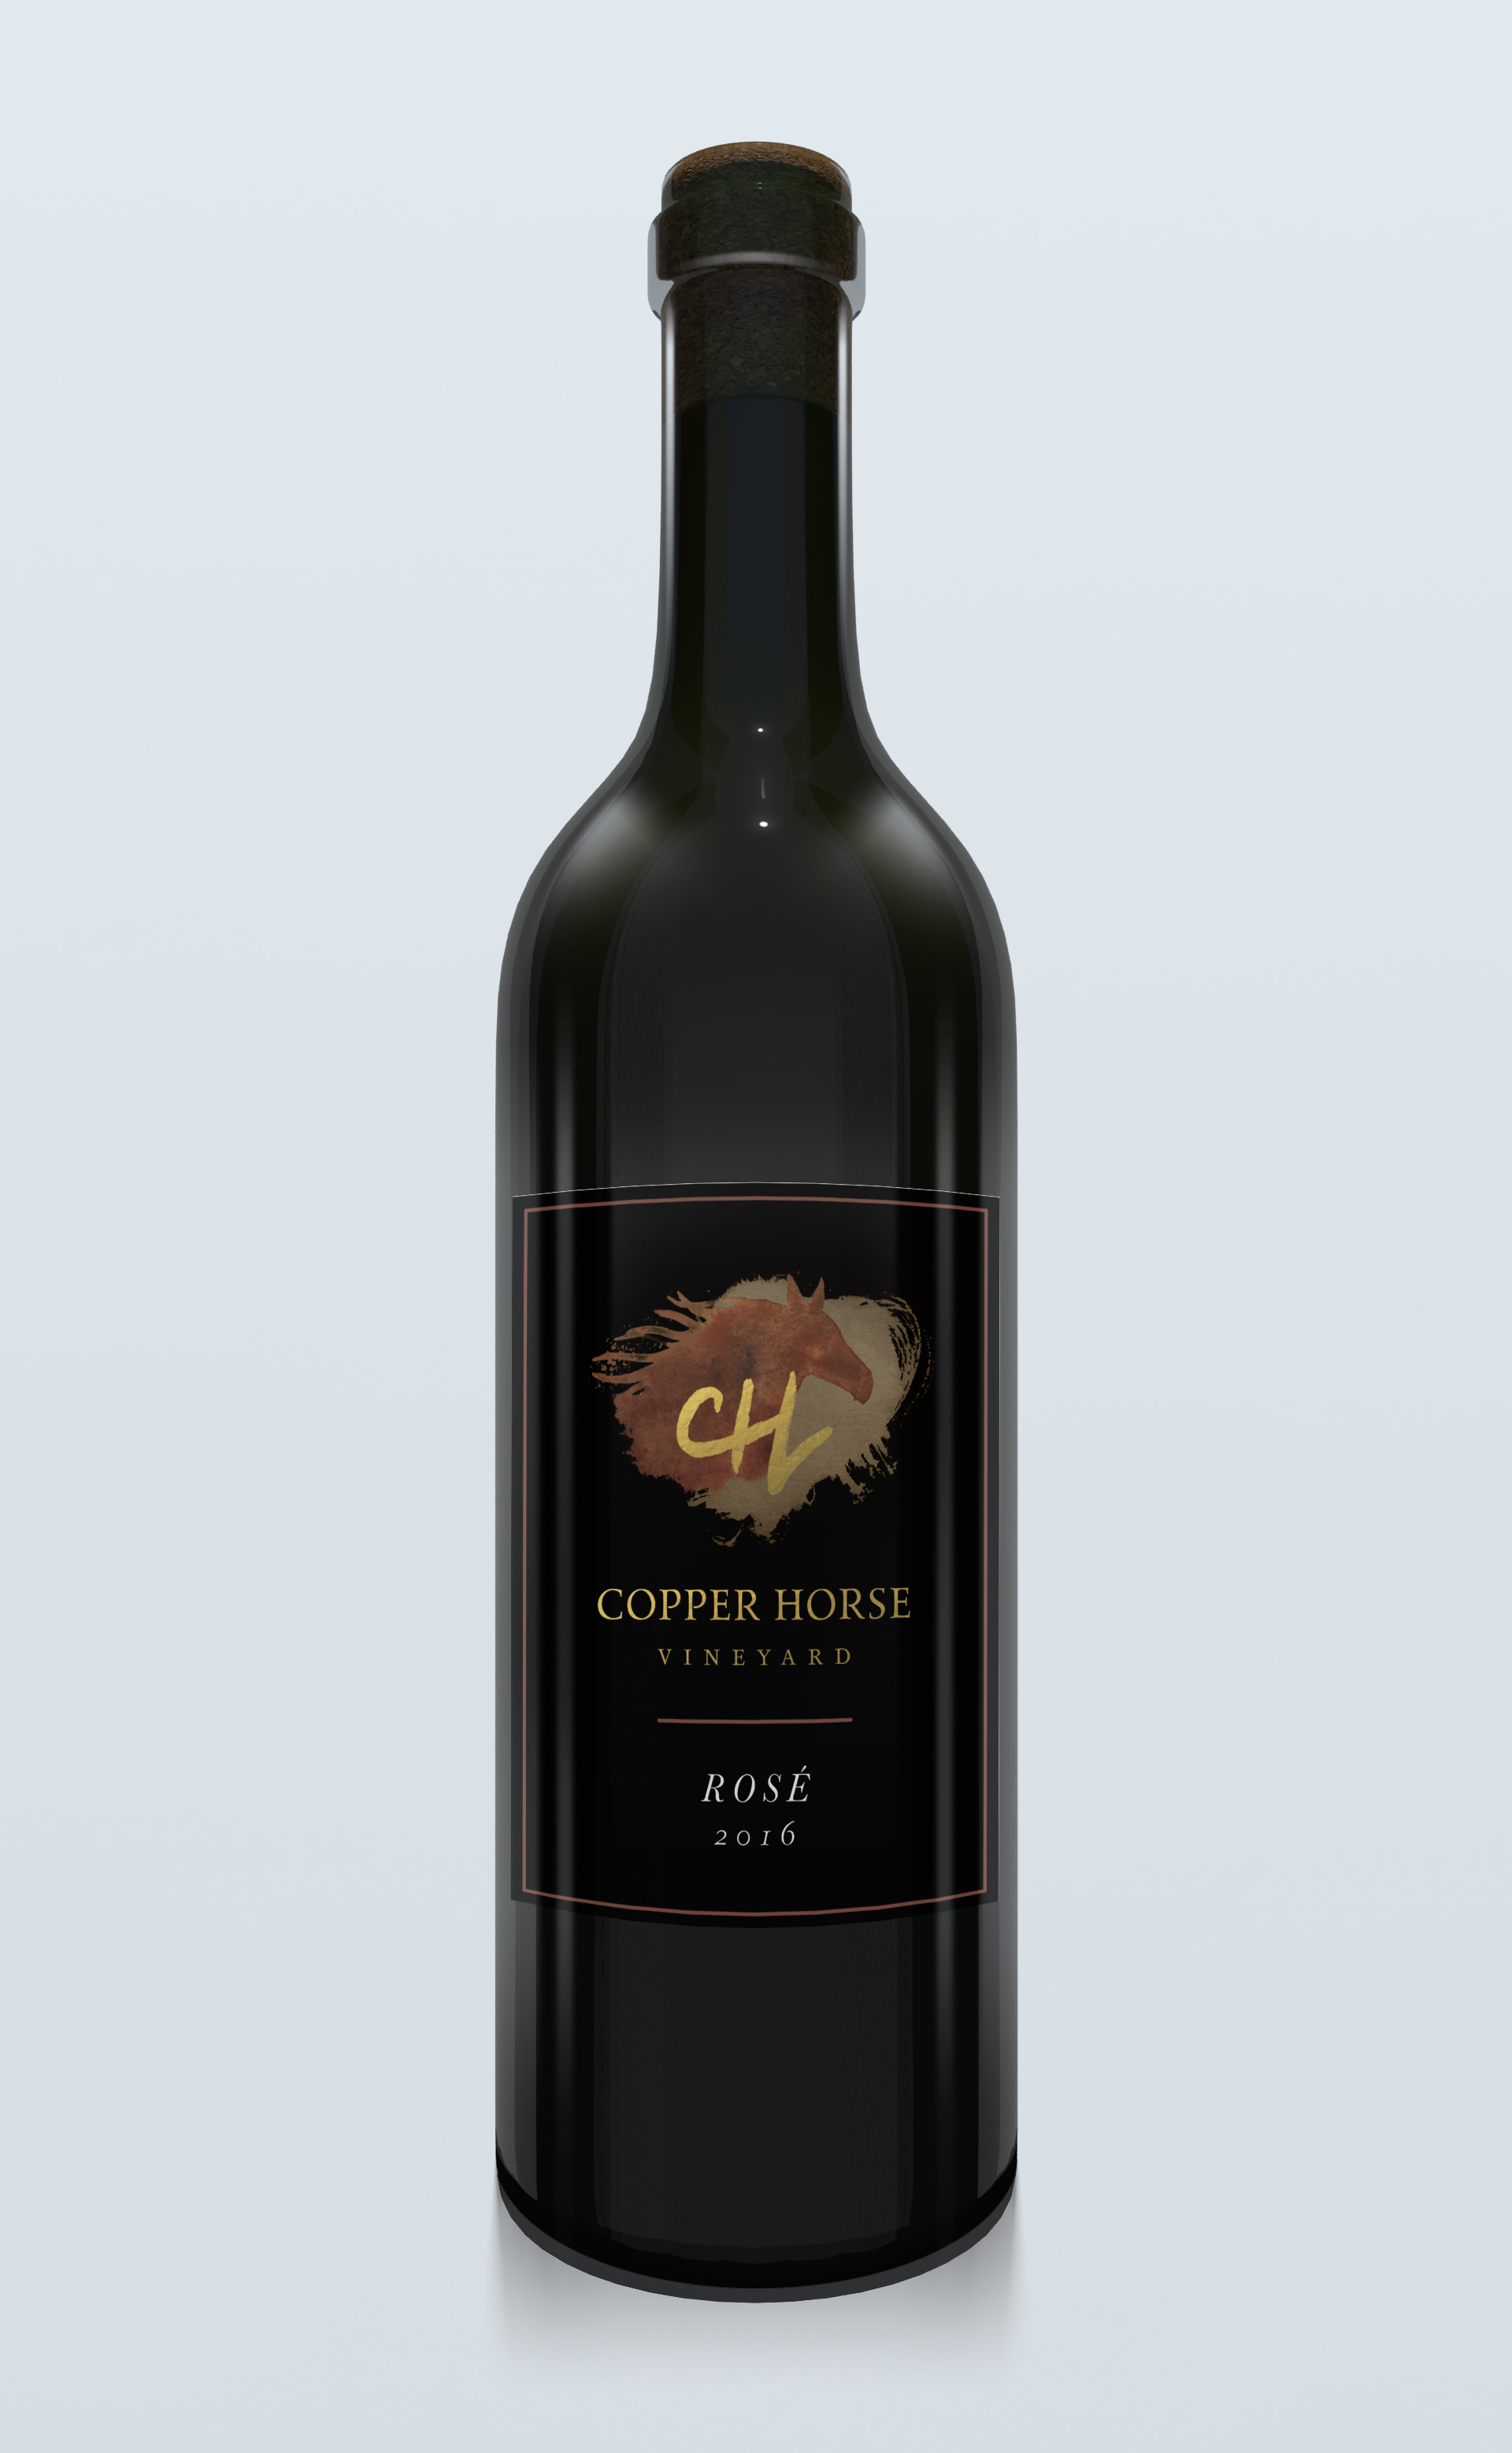 Mock up of the front label on the bottle